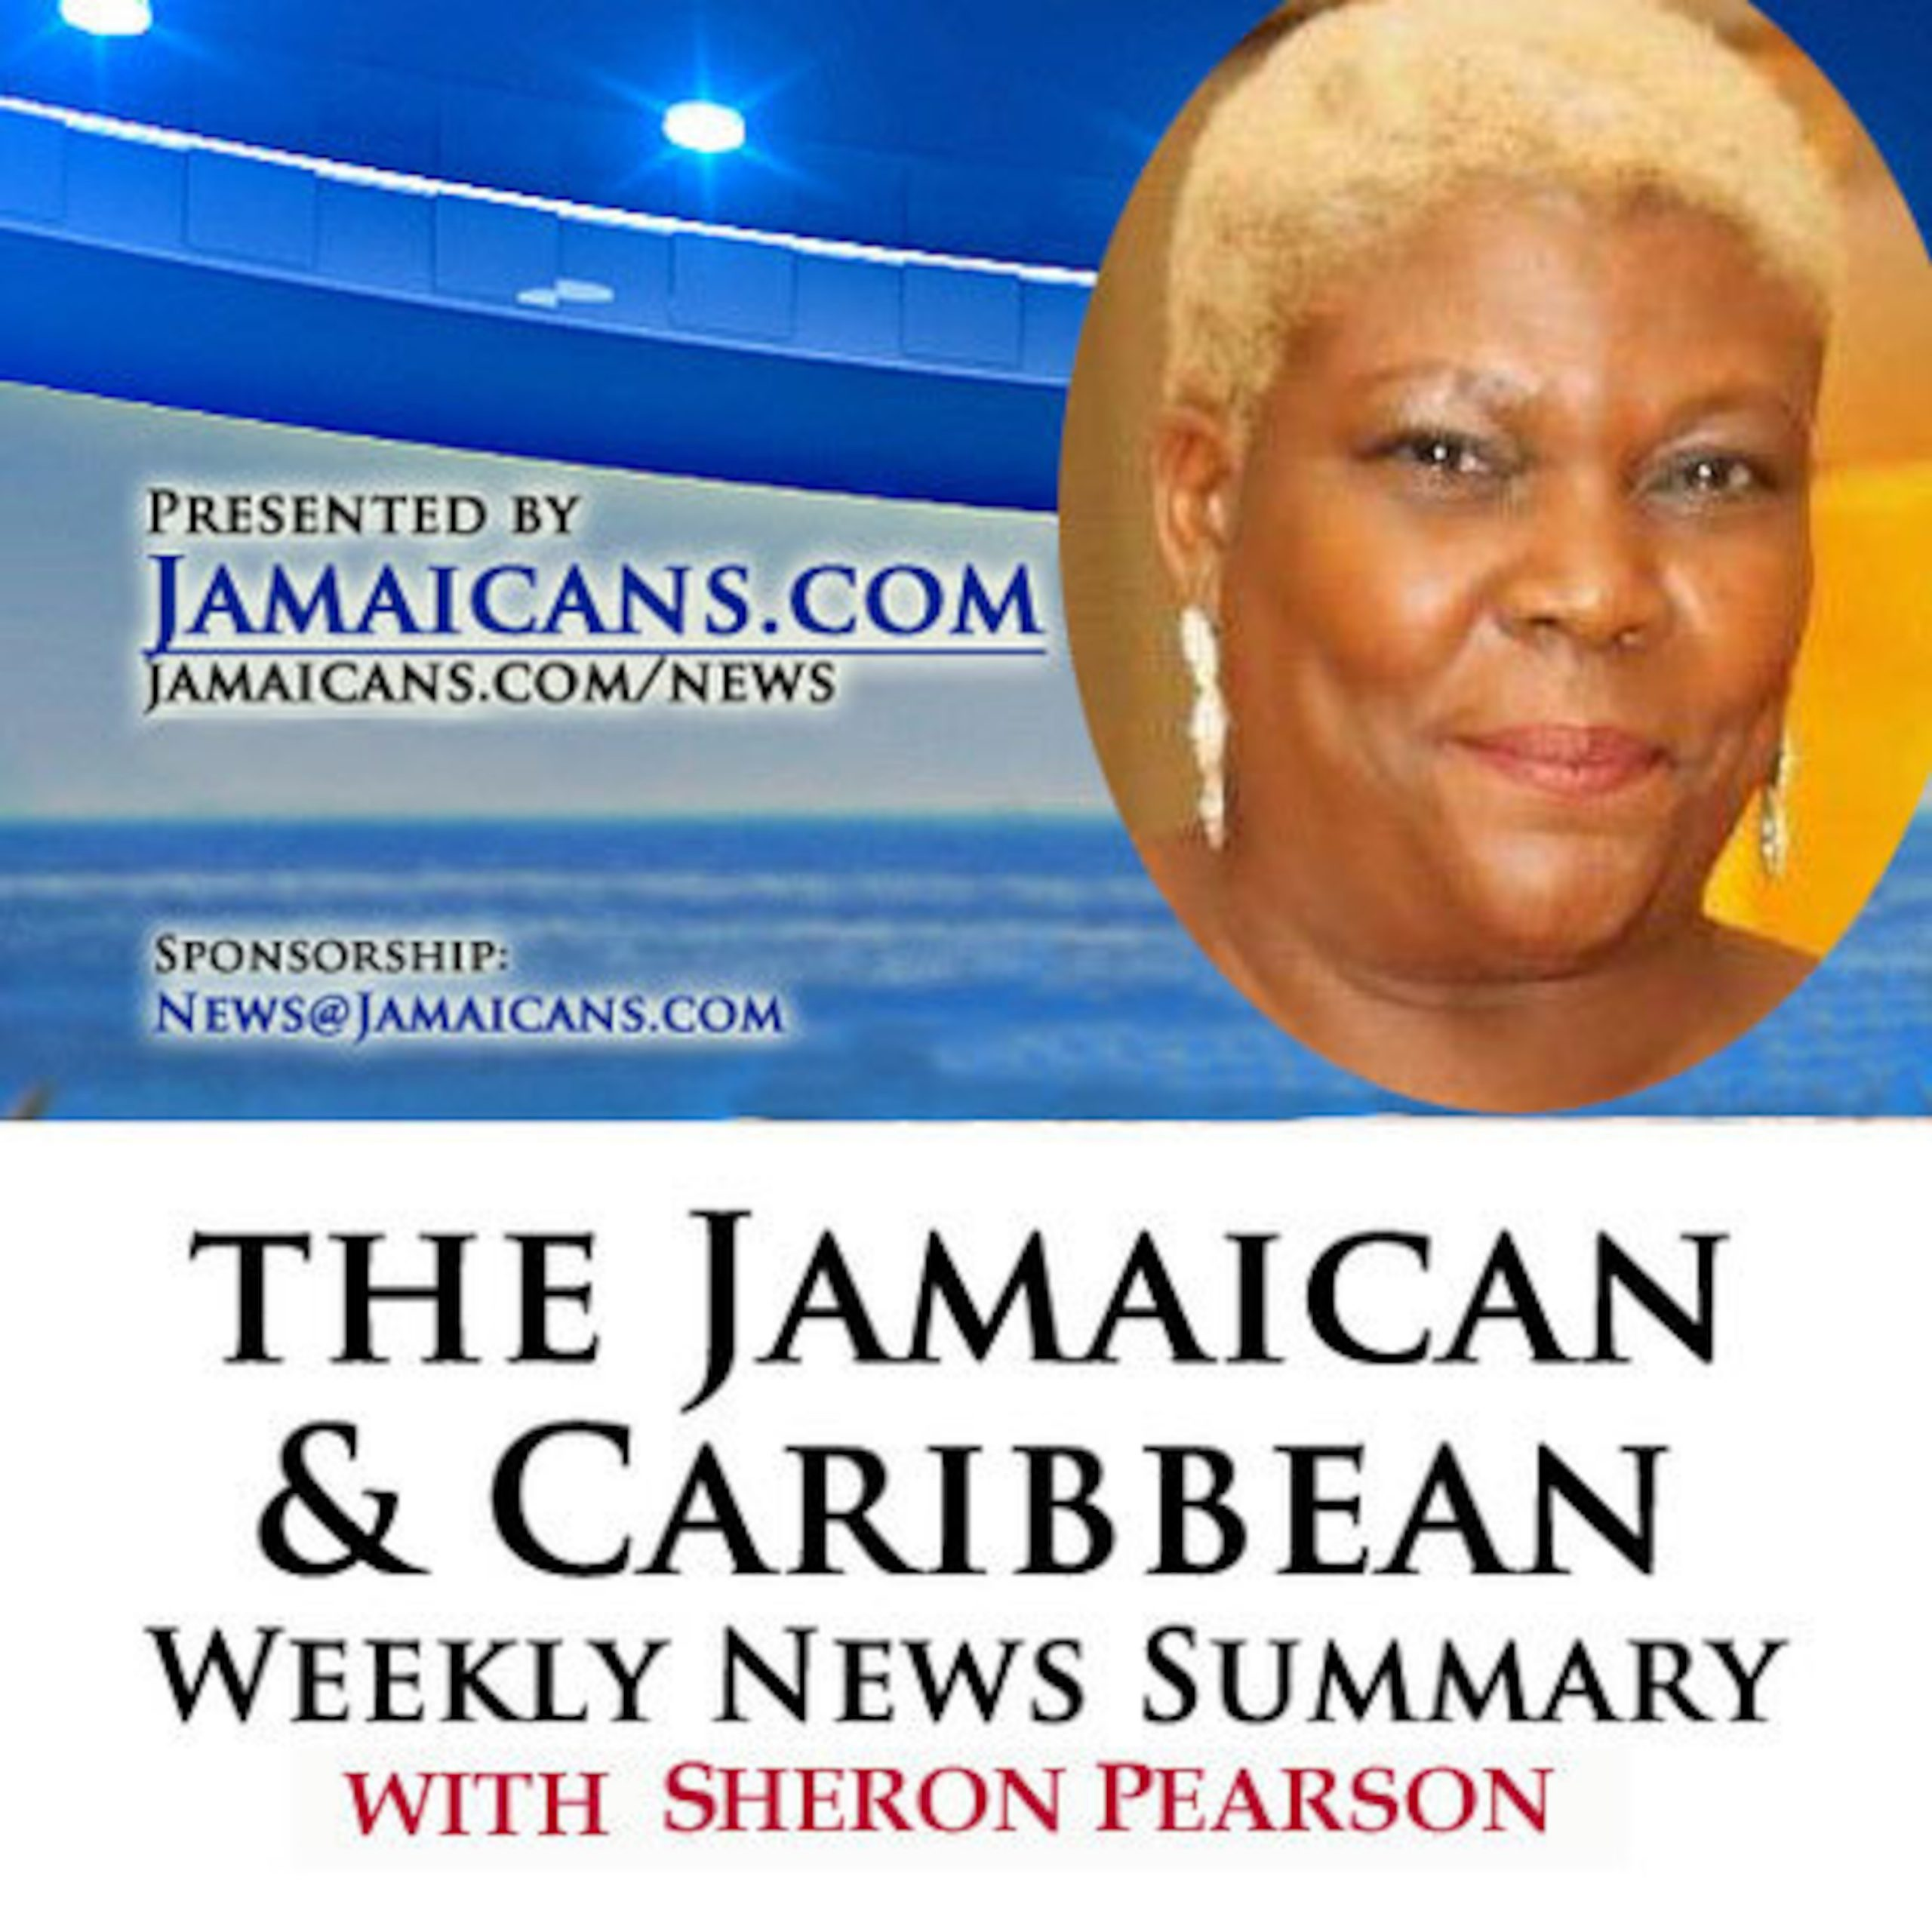 This is the Podcast of 7 Jamaican & Caribbean News Stories You May Have missed for the week ending September 13 2019.